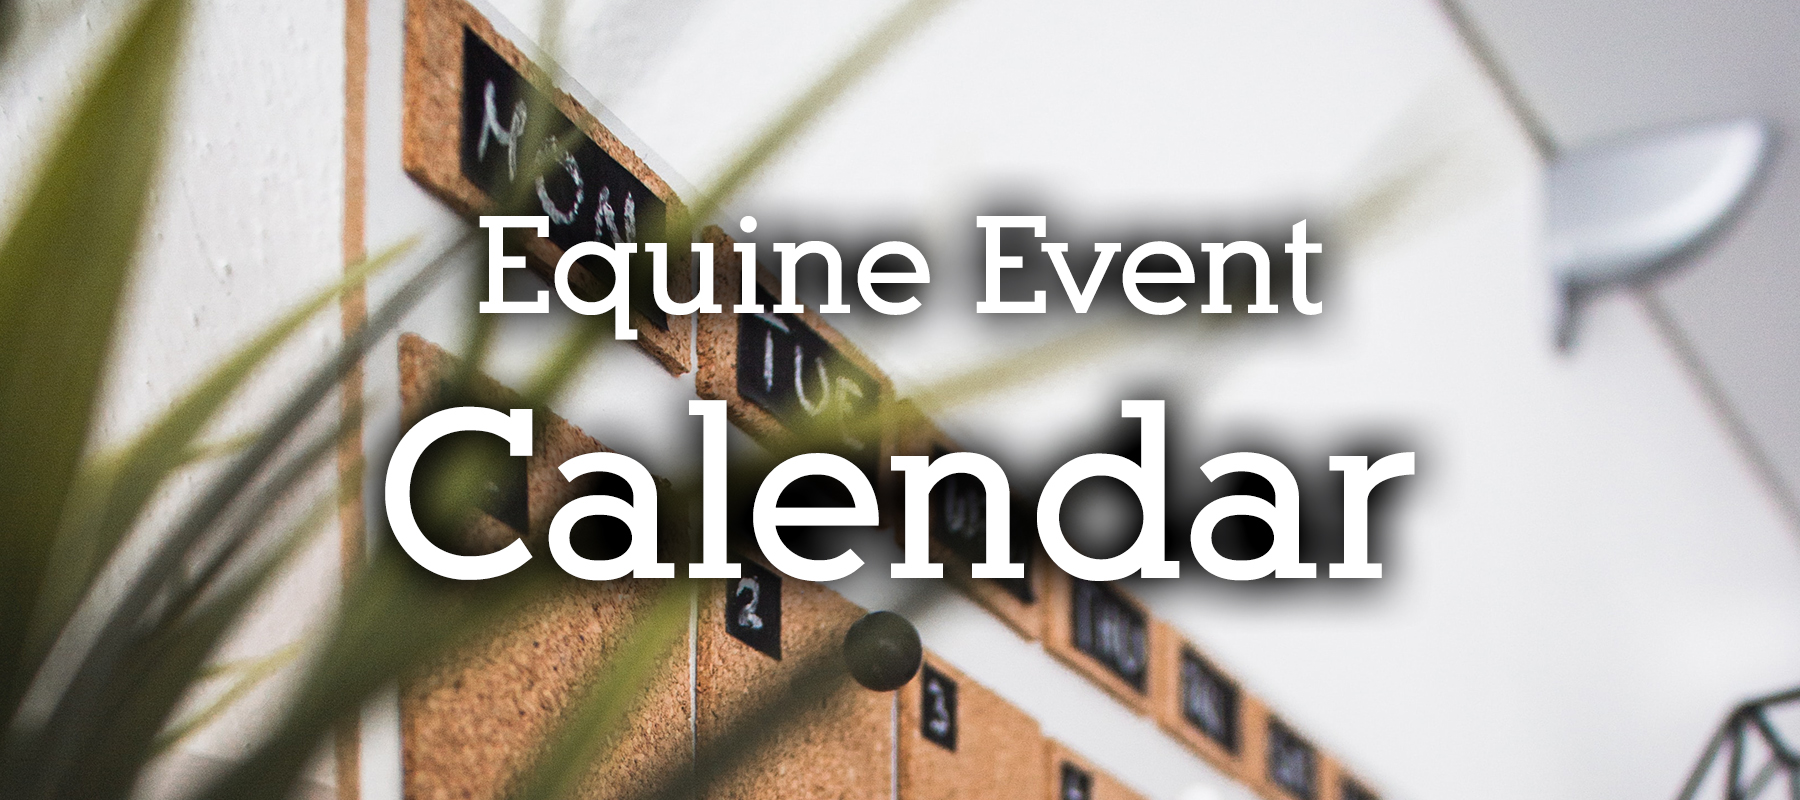 Equine Event Calendar in Colorado